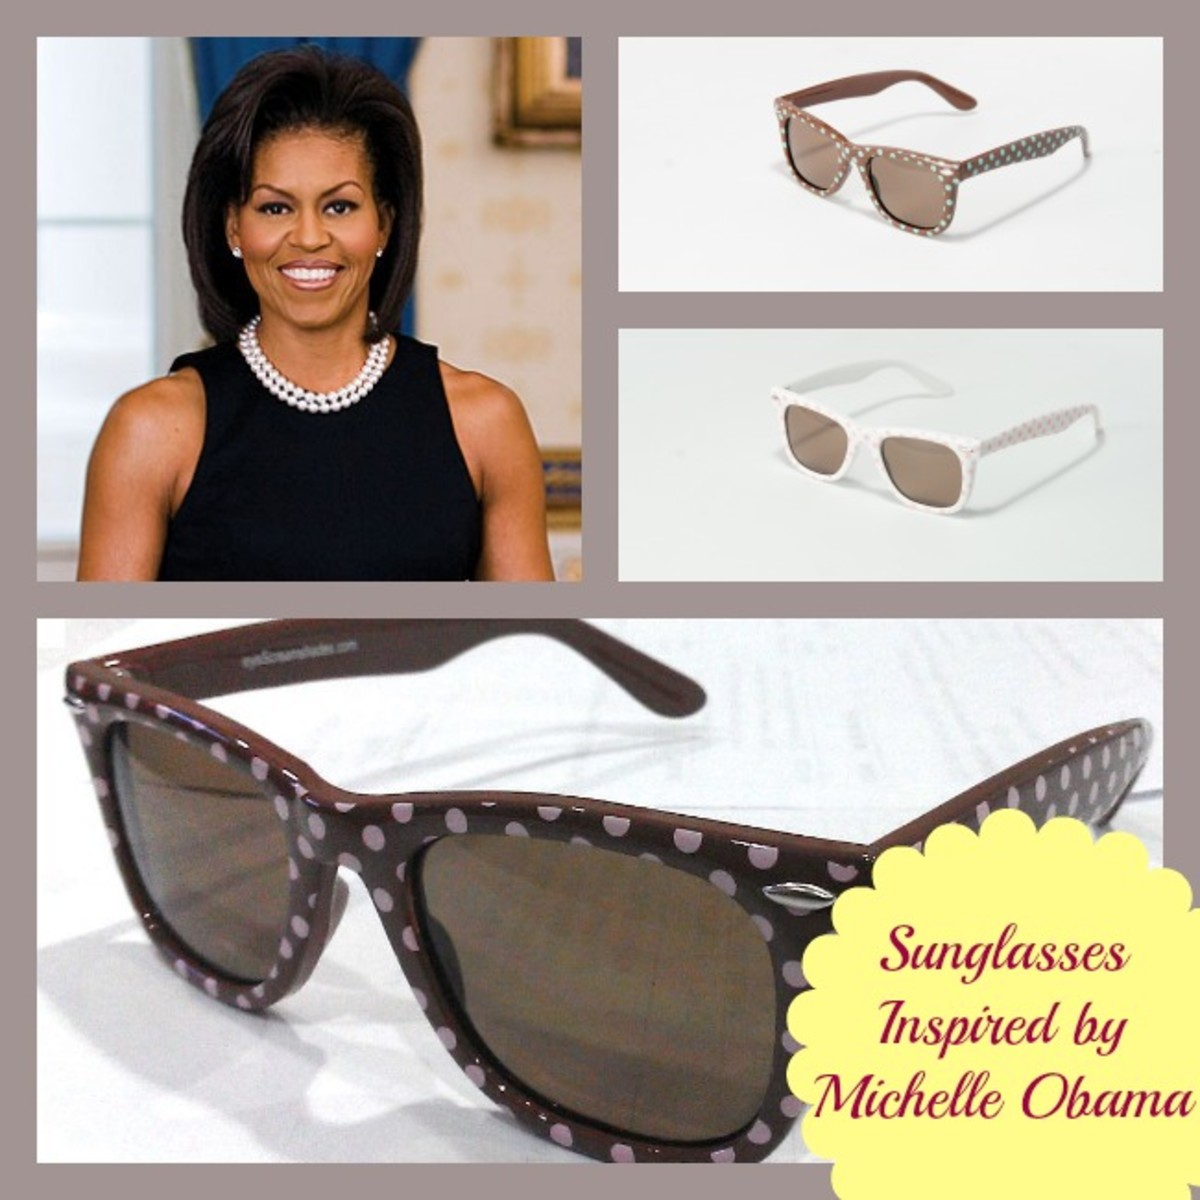 Obama Chip for 2013 http://www.momtrends.com/2013/03/eyes-cream-shades-chip-collection-inspired-by-michelle-obama/